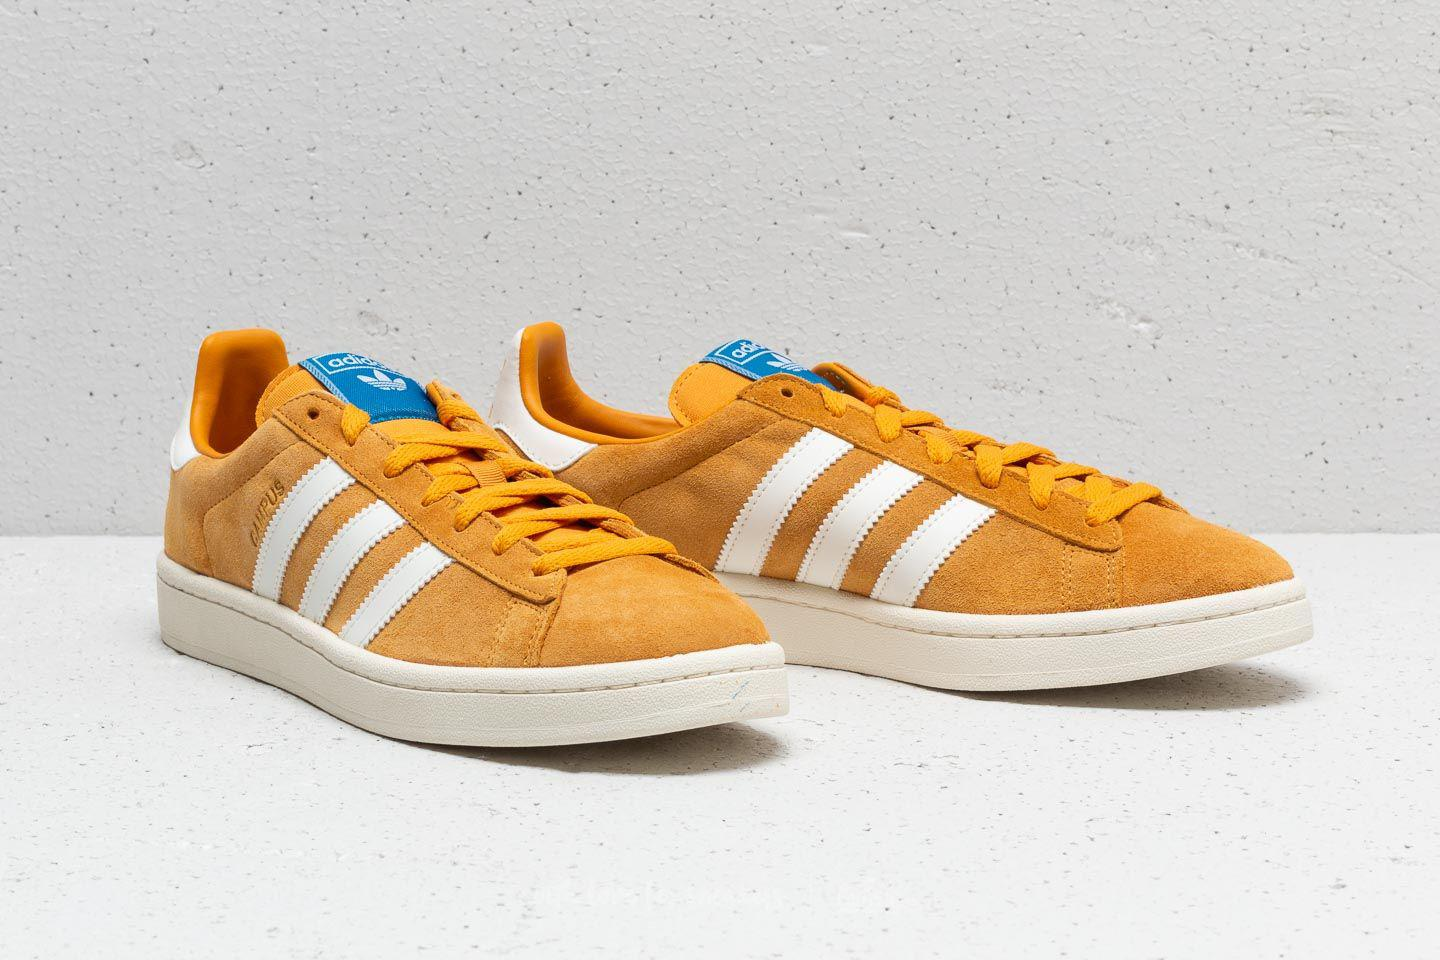 newest 9b47e 050f1 Lyst - adidas Originals Adidas Campus Tactile Yellow  Cloud White ...